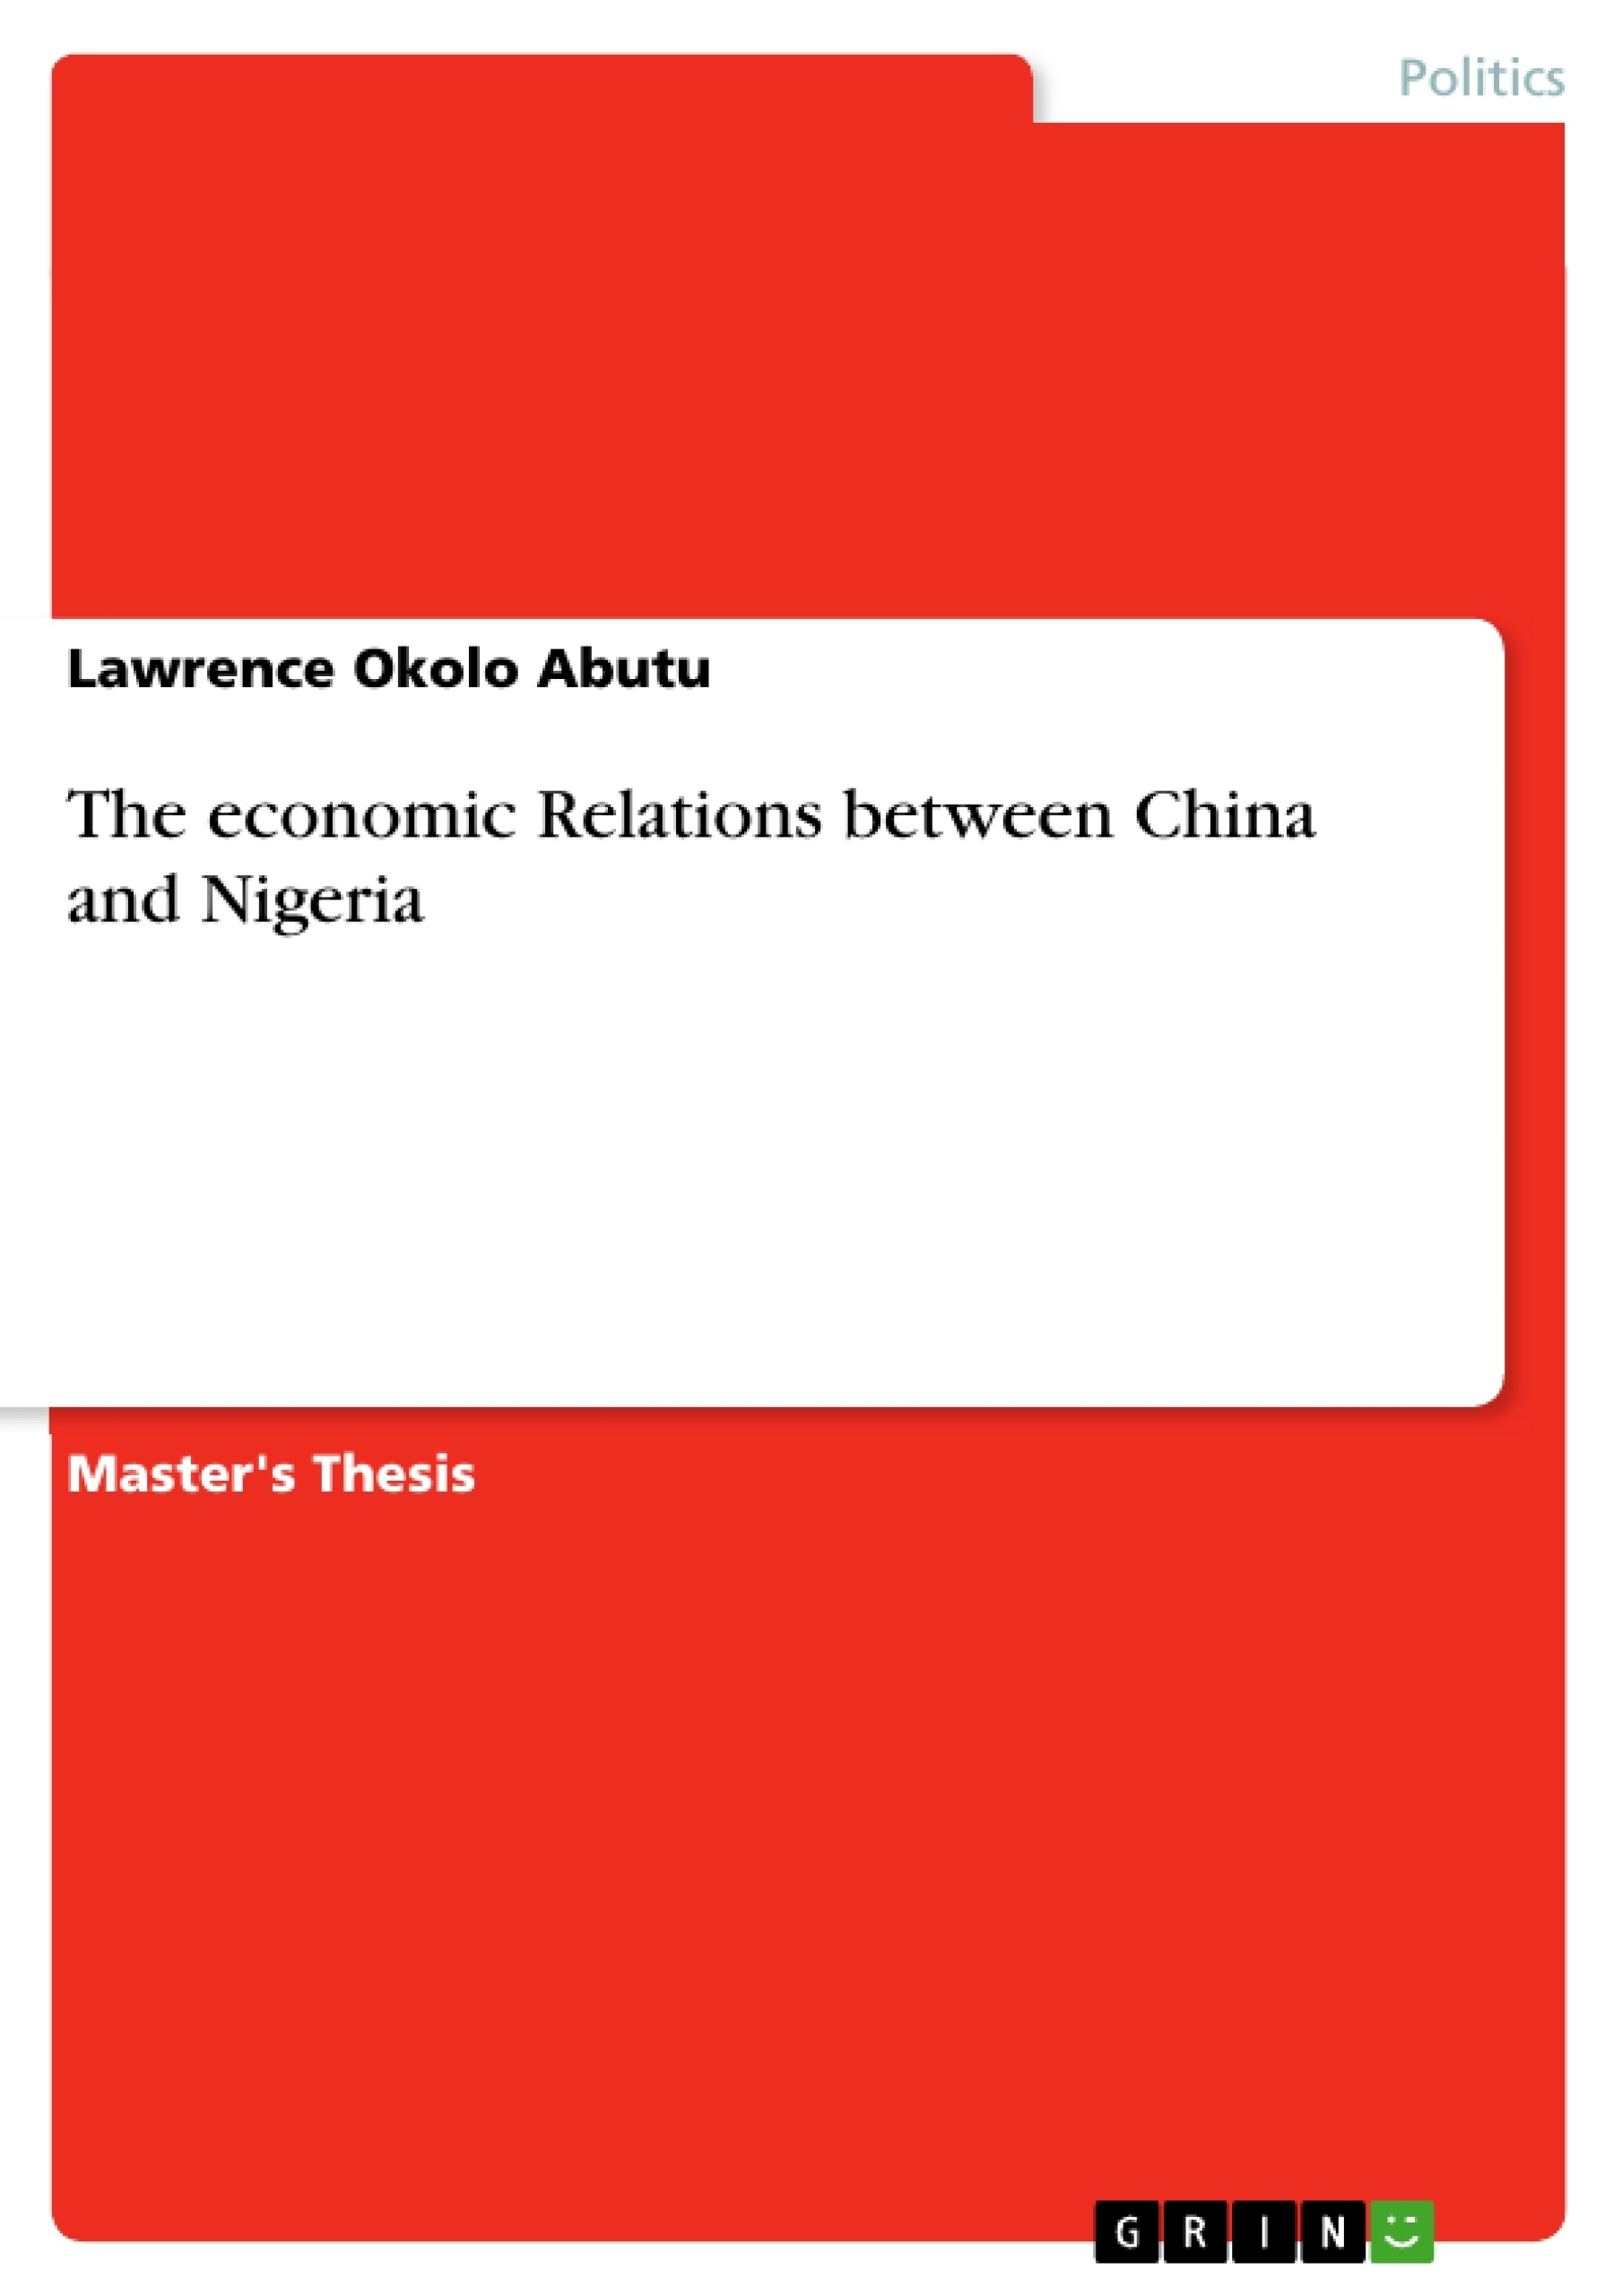 The economic relations between china and nigeria publish your the economic relations between china and nigeria publish your masters thesis bachelors thesis essay or term paper fandeluxe Image collections